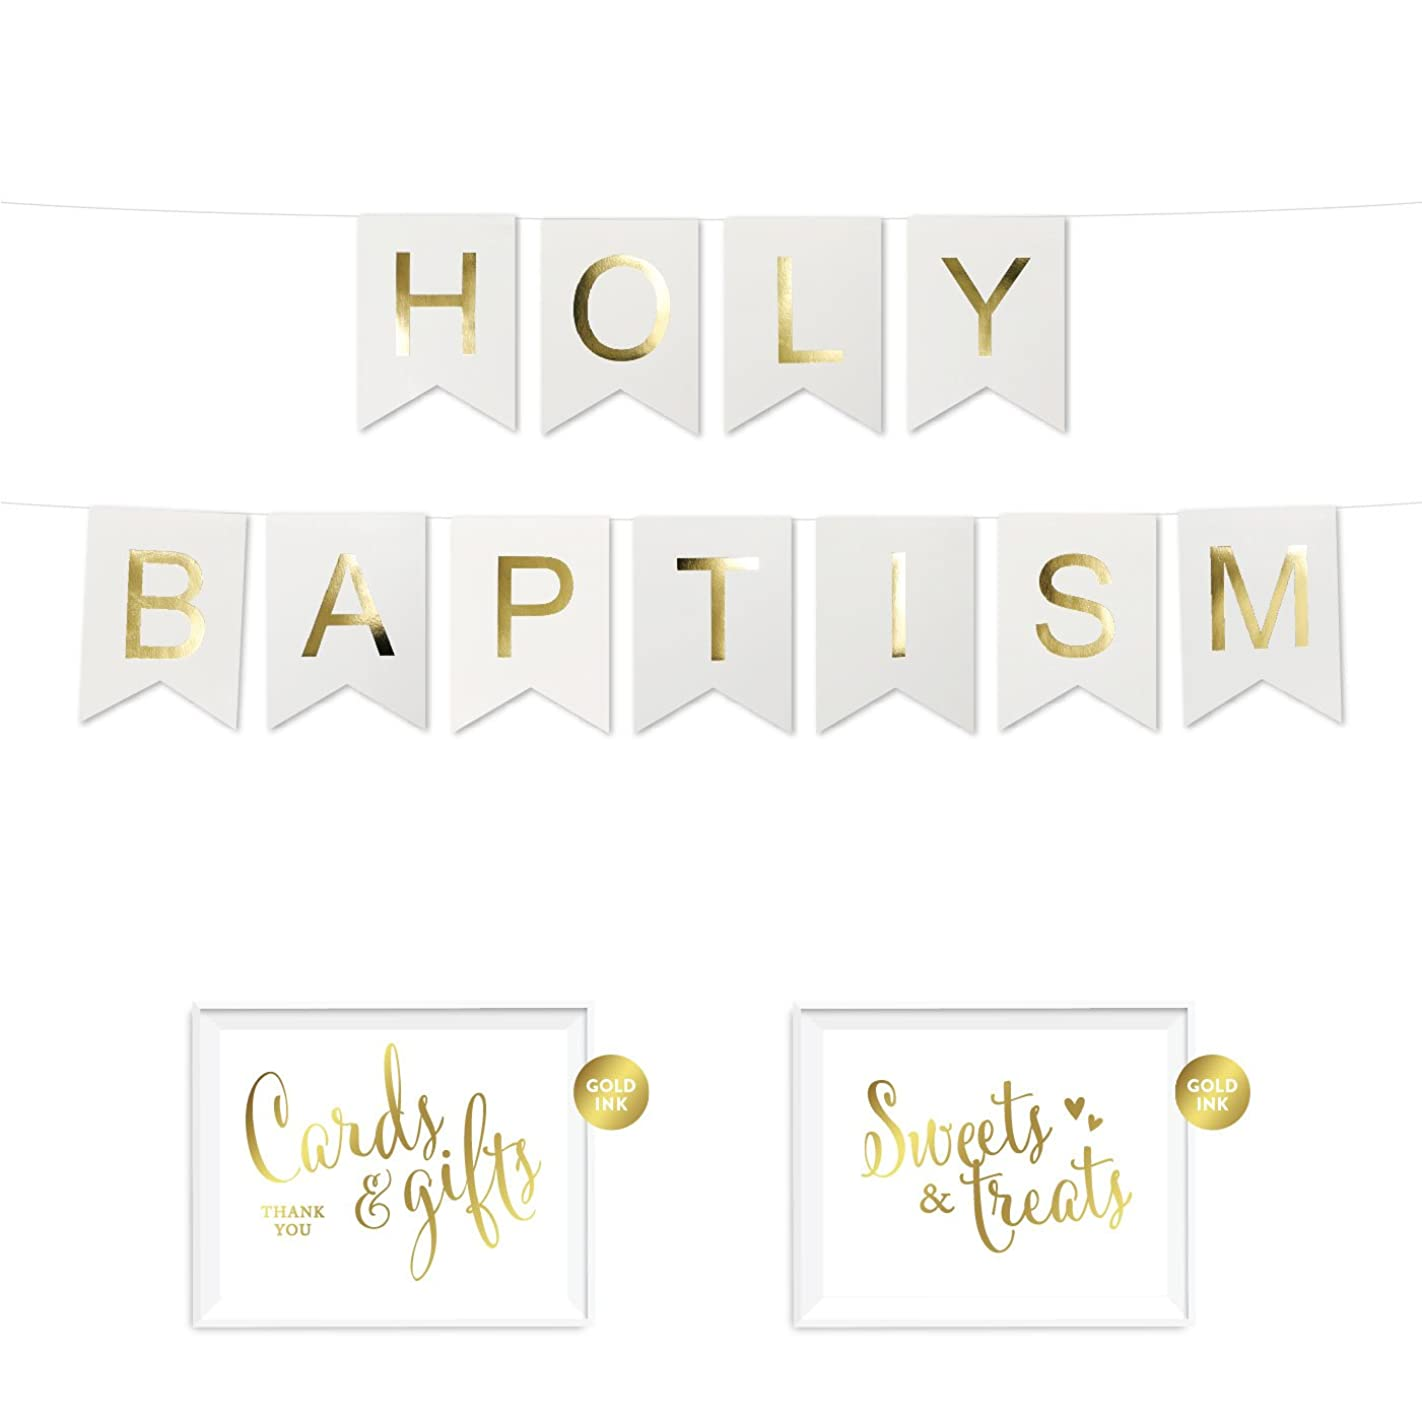 Andaz Press Shiny Gold Foil Paper Pennant Hanging Banner with Gold Party Signs, Holy Baptism, White, Pre-Strung, No Assembly Required, 1-Set g30685666135